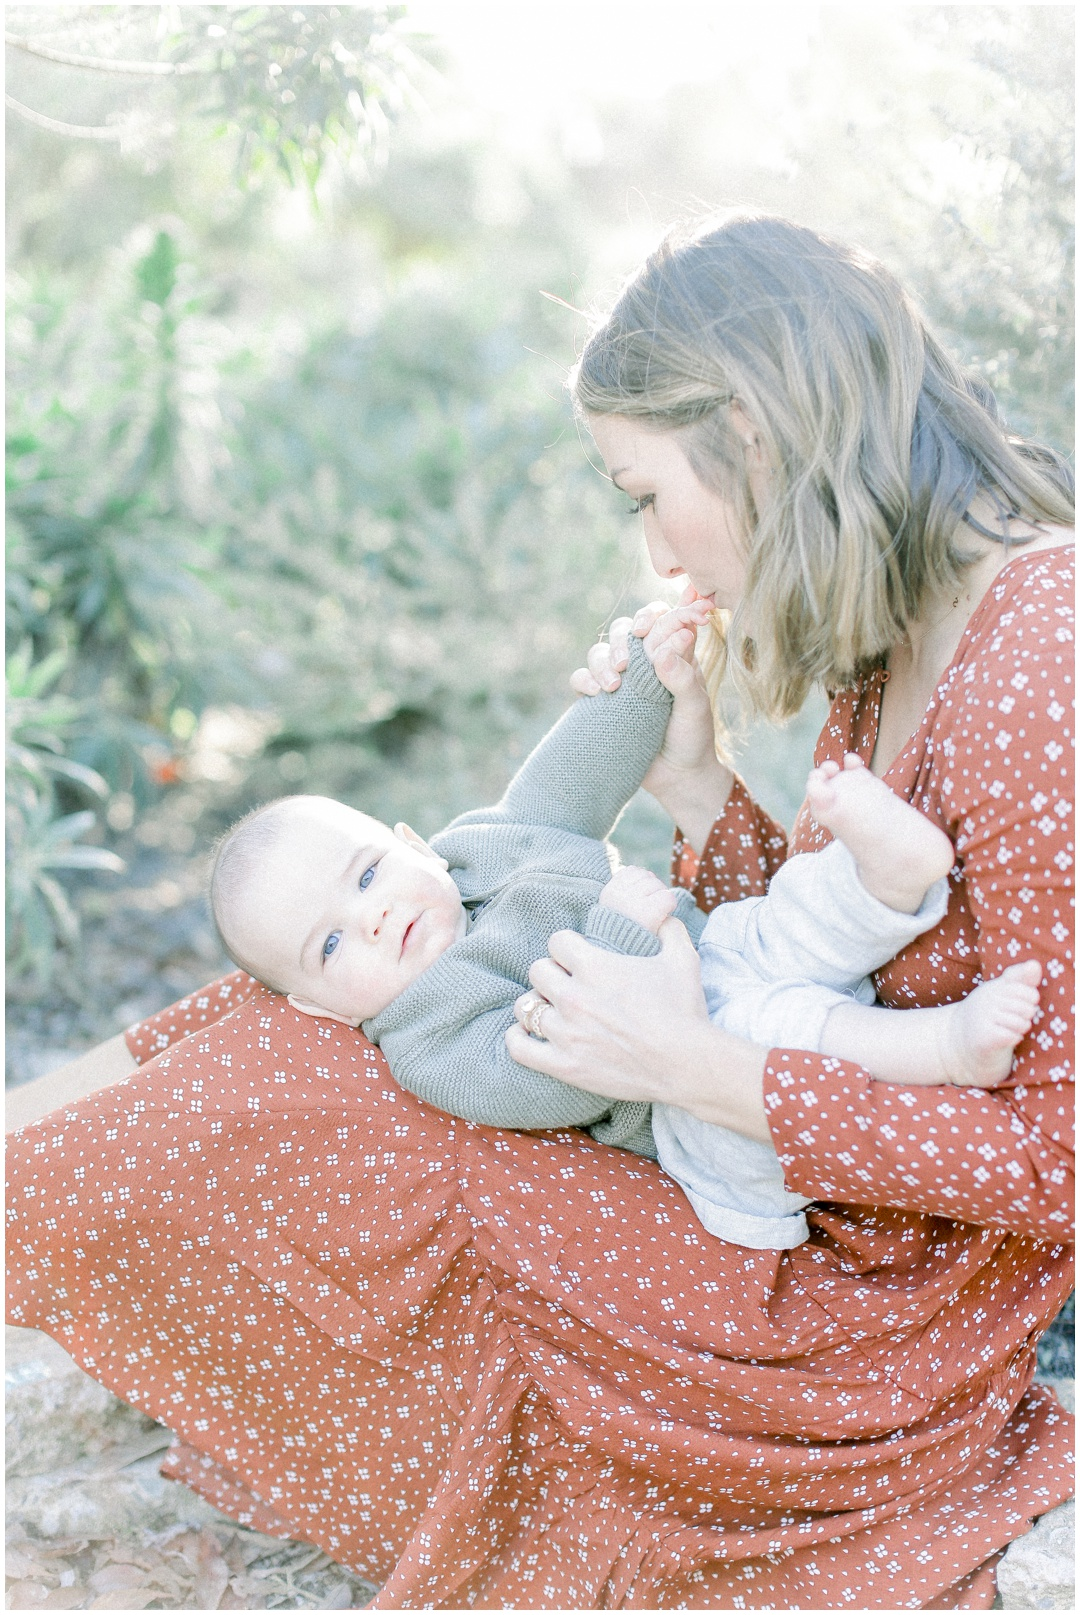 Newport_Beach_Newborn_Photographer_Newport_Beach_Maternity_Photographer_Orange_County_Family_Photographer_Cori_Kleckner_Photography_Huntington_Beach_Photographer_Family_OC_Newborn_Carrie_Stotts_Sean_Stotts__3049.jpg